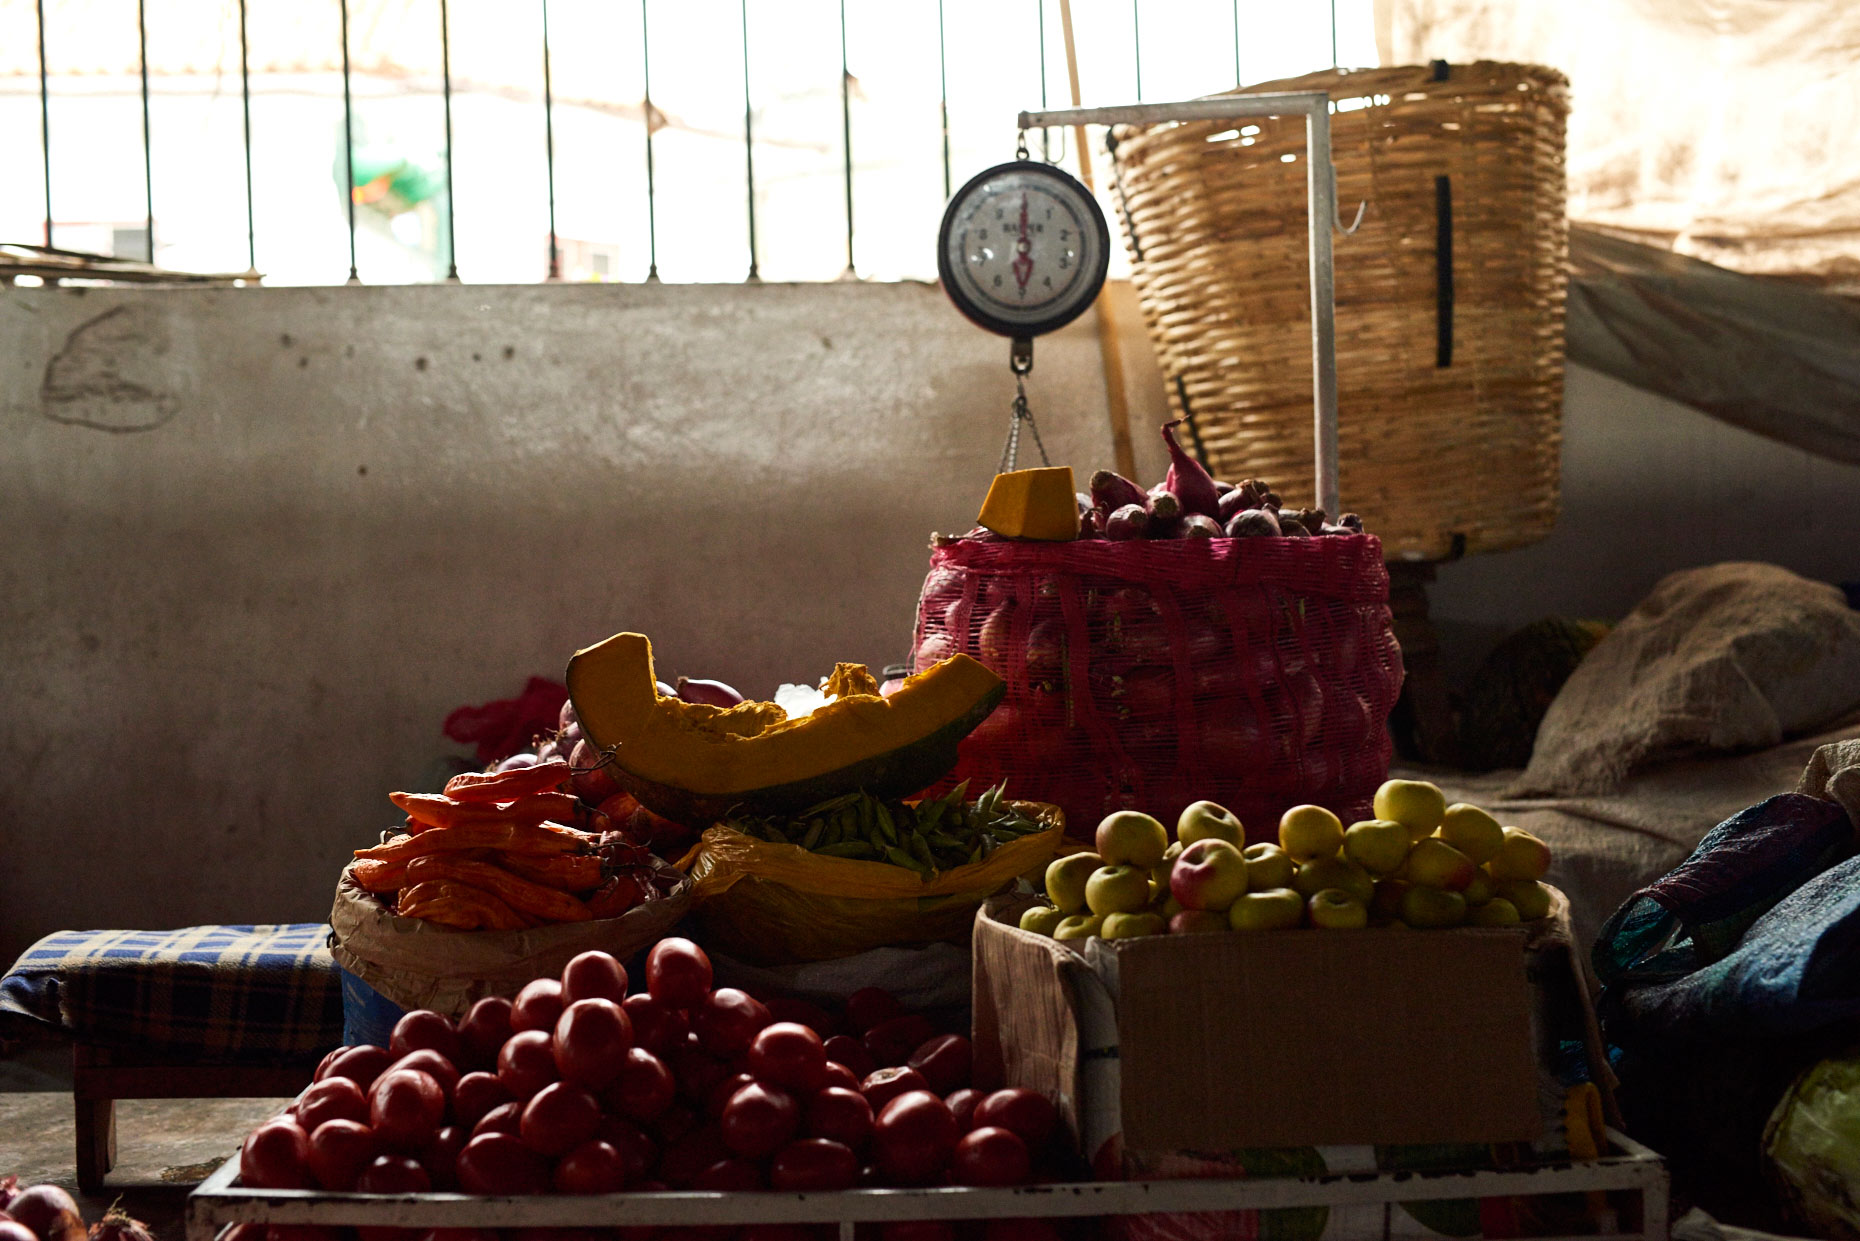 Fruit-and-vegetables-on-scale-at-Market-in-Cusco-Peru